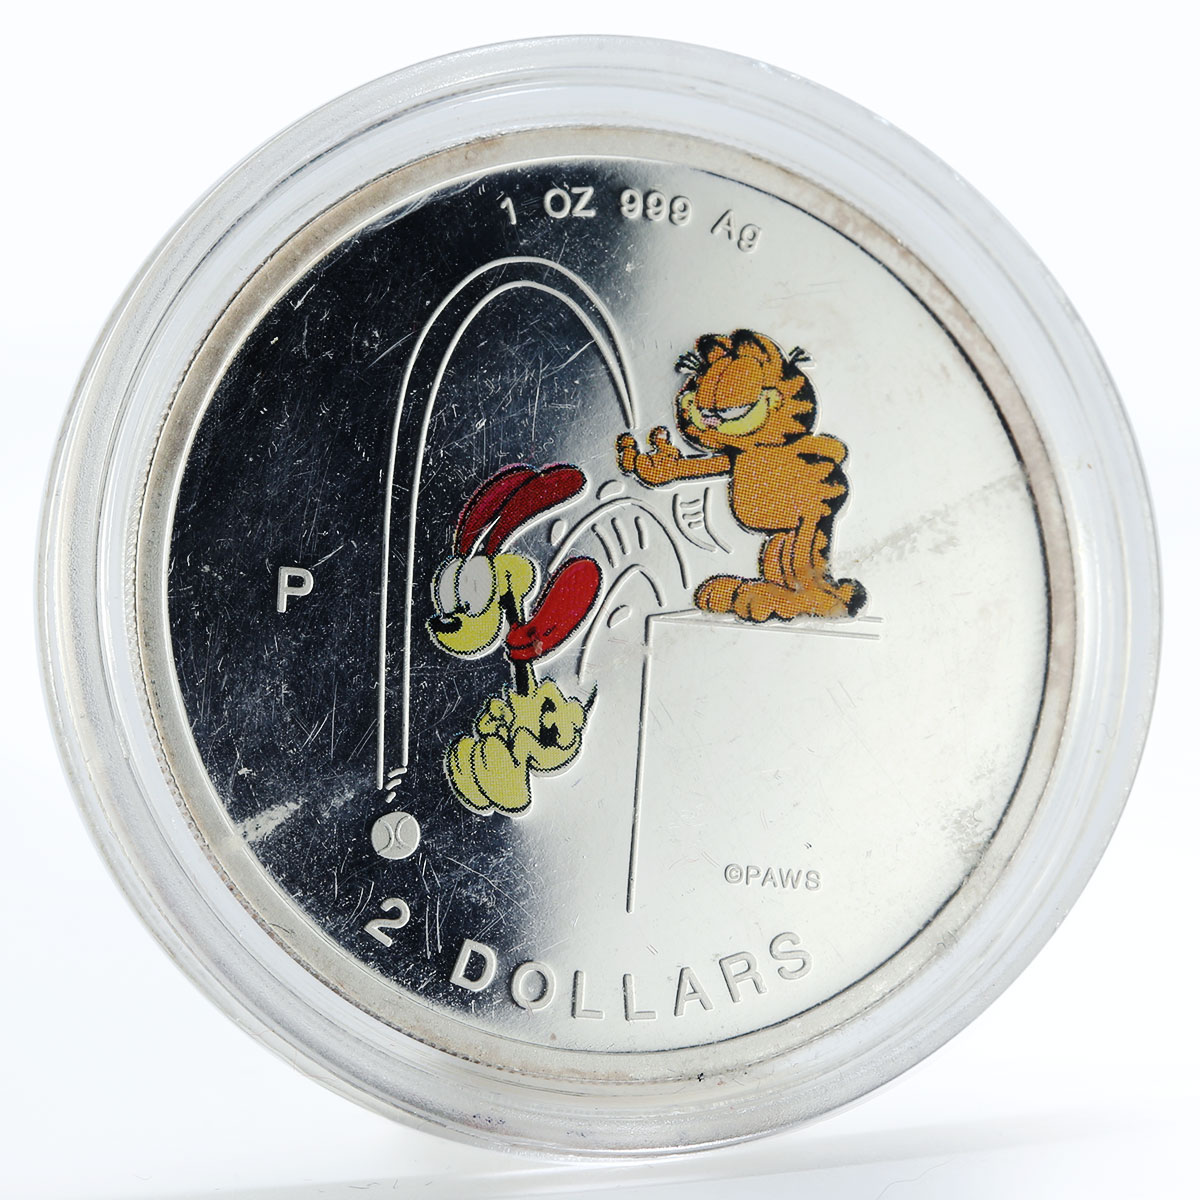 Cook Islands 2 dollars Cat Garfield and dog colored silver coin 1999